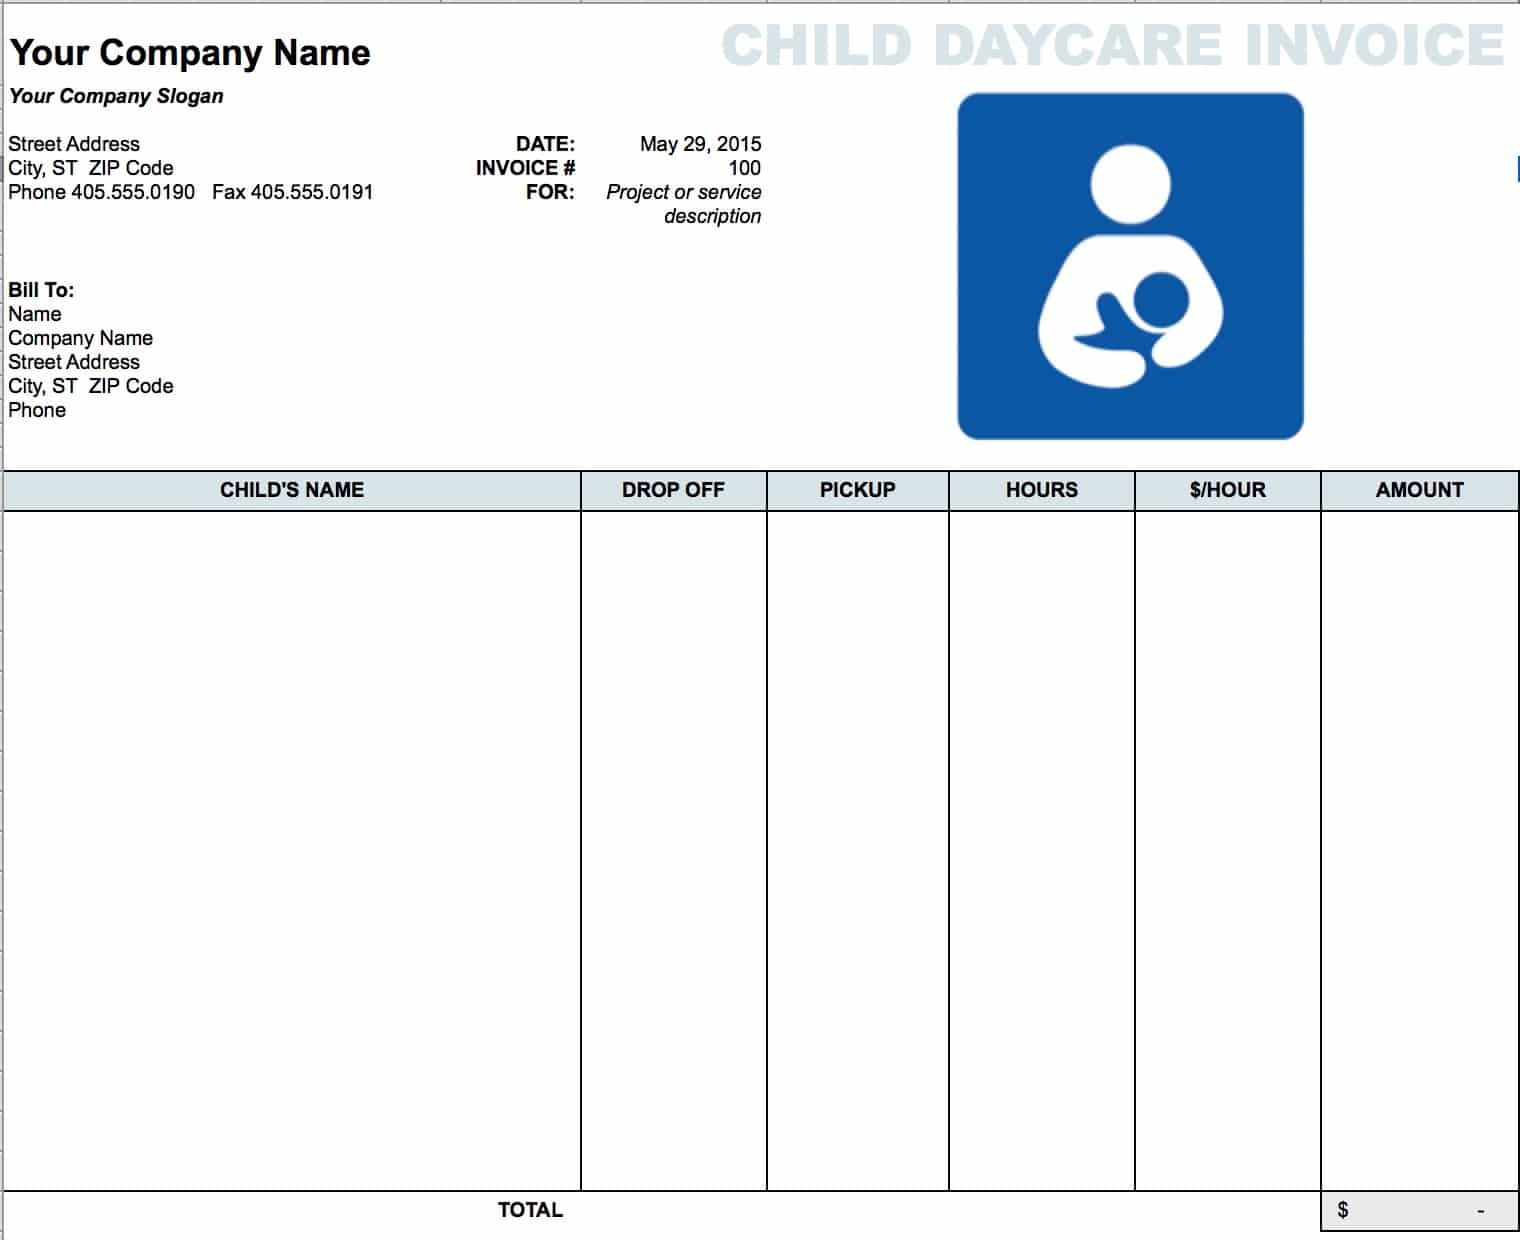 Free Daycare Child Invoice Template Excel PDF Word Doc - An invoice template